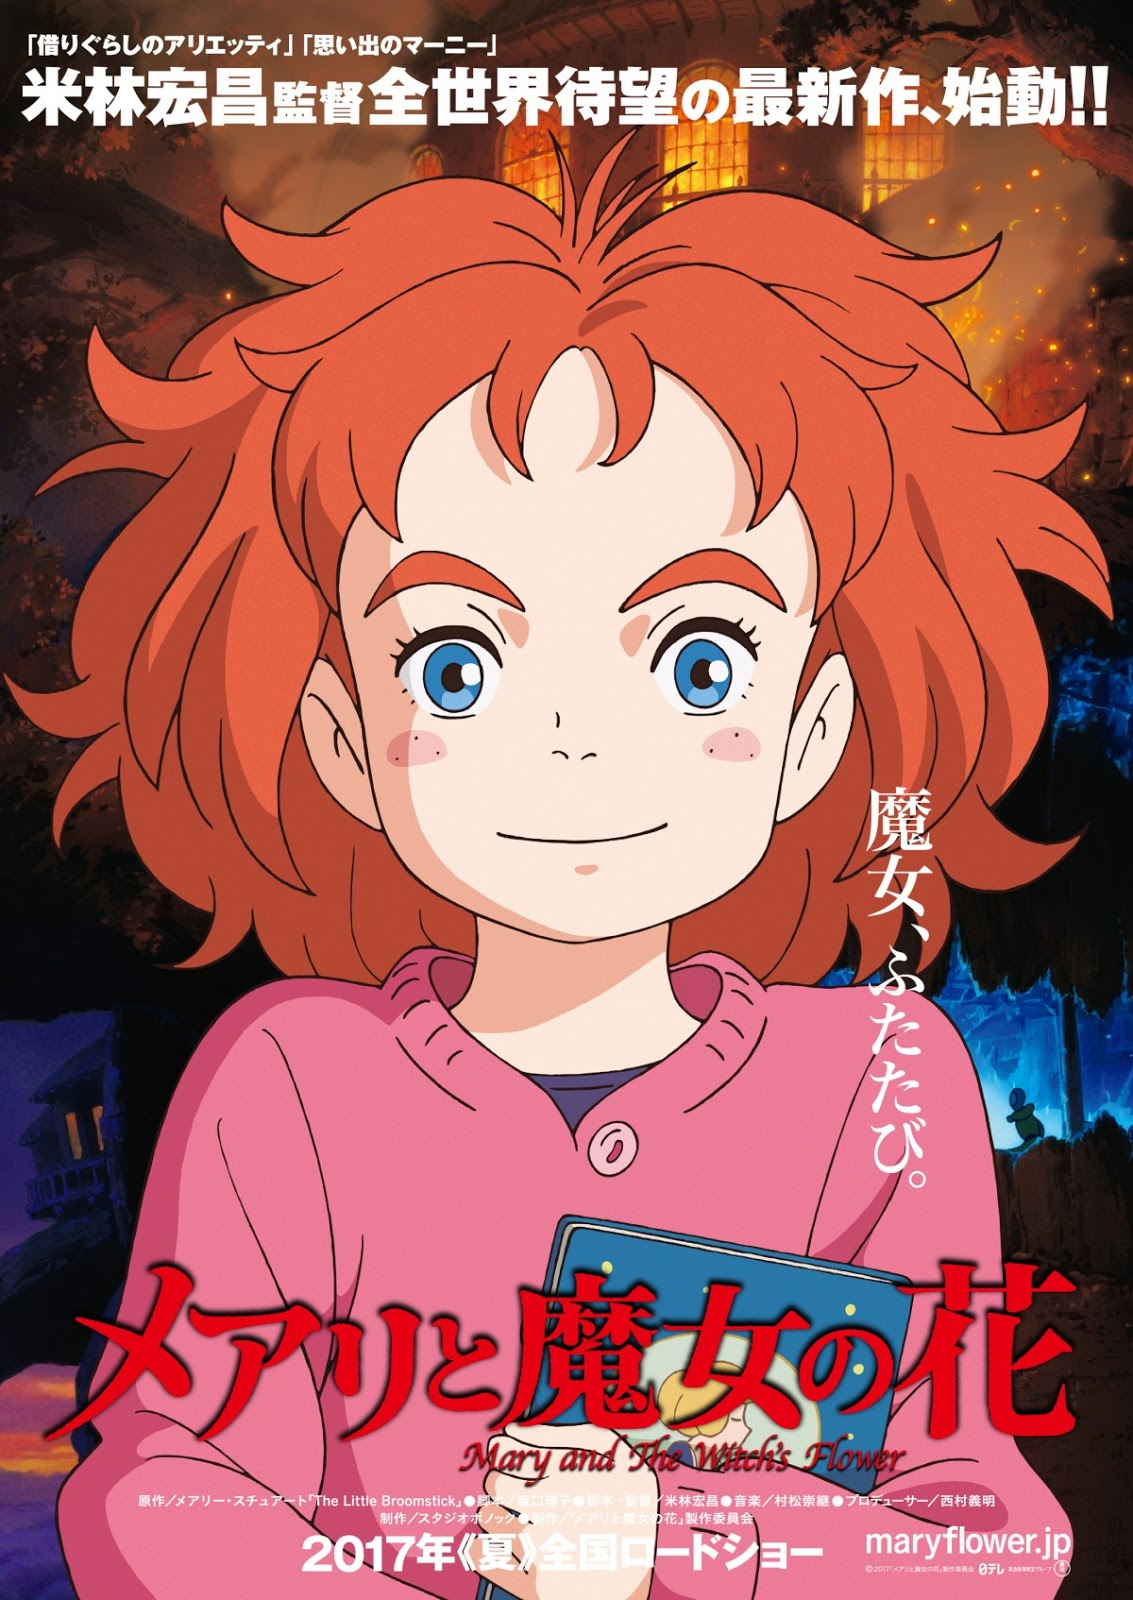 2017 japanese animated film mary and the witchs flower メアリと魔女の花 in pittsburgh in january 2018